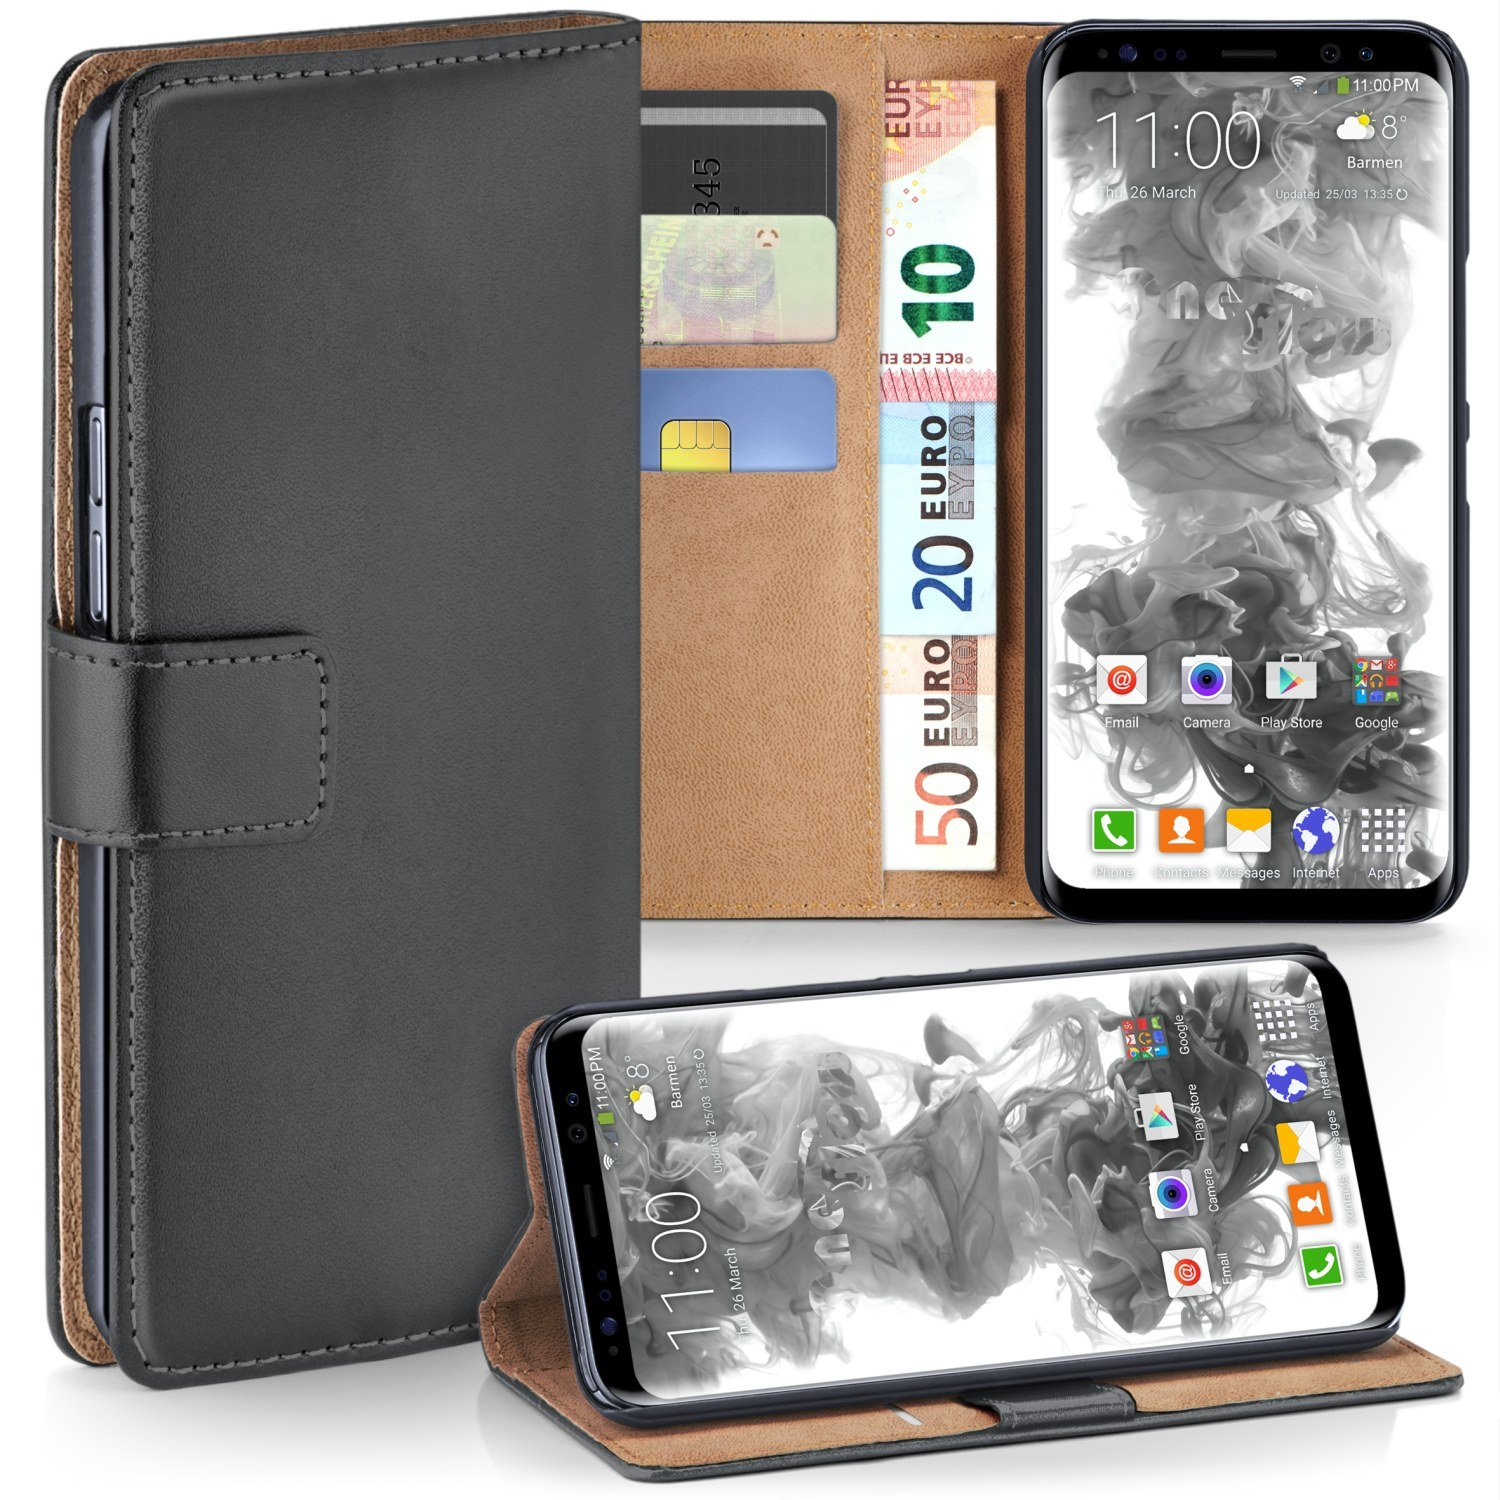 Galaxy S8 Wallet Case, OneFlow [Credit Card Holder Slots and Kickstand] PU Wallet Case for Samsung Galaxy S8 Faux Leather Flip Folio Cover - ANTHRACITE-GRAY